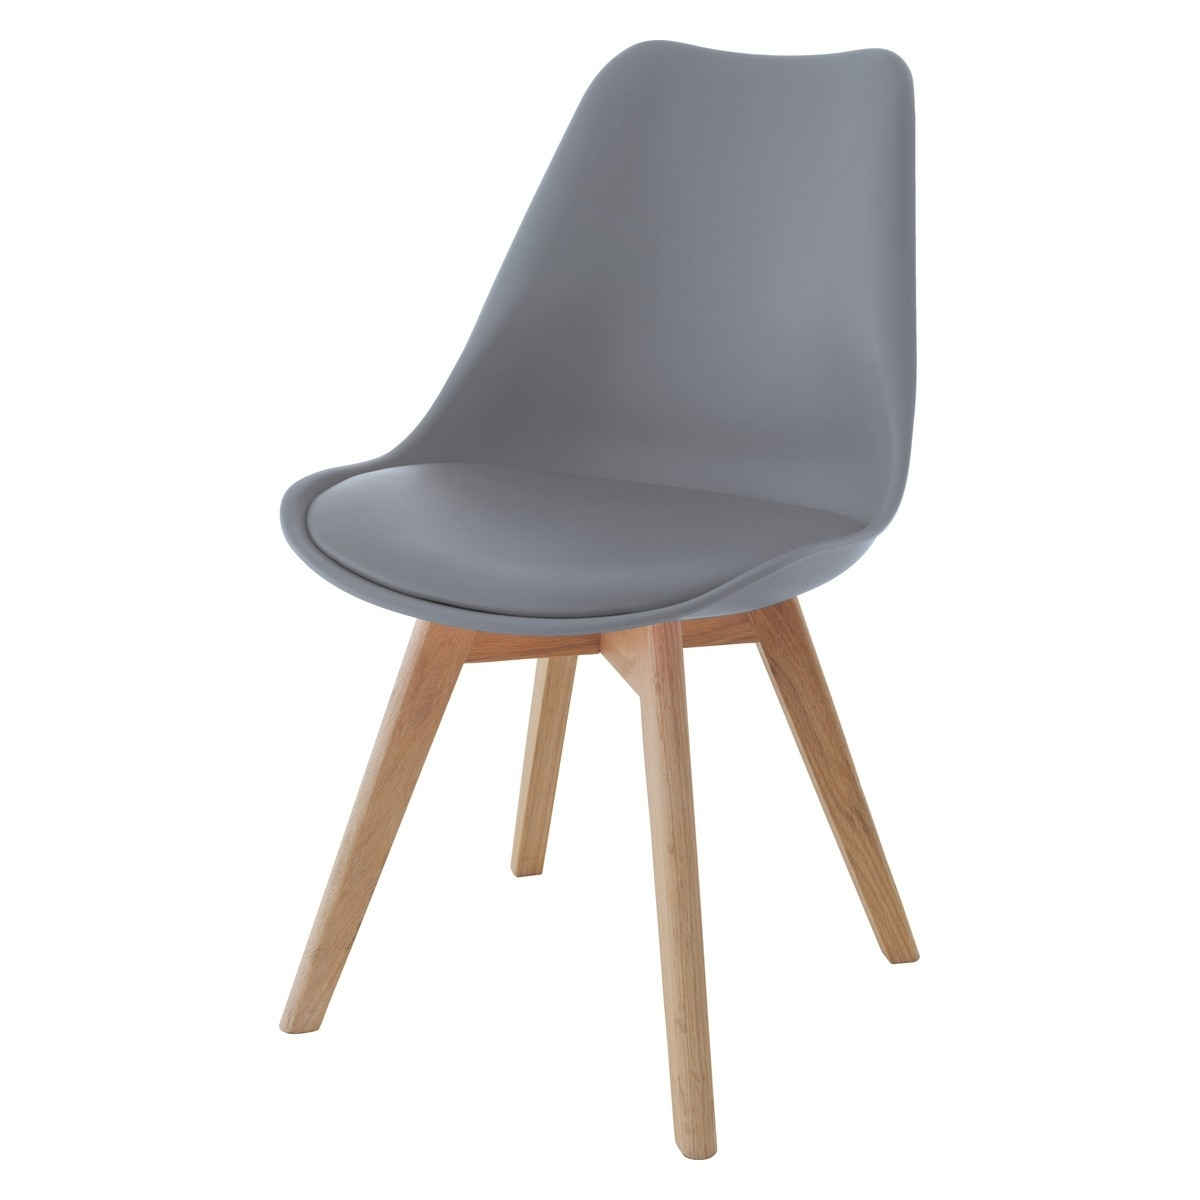 Buy Now At Habitat Uk In Best And Newest Grey Dining Chairs (View 5 of 25)